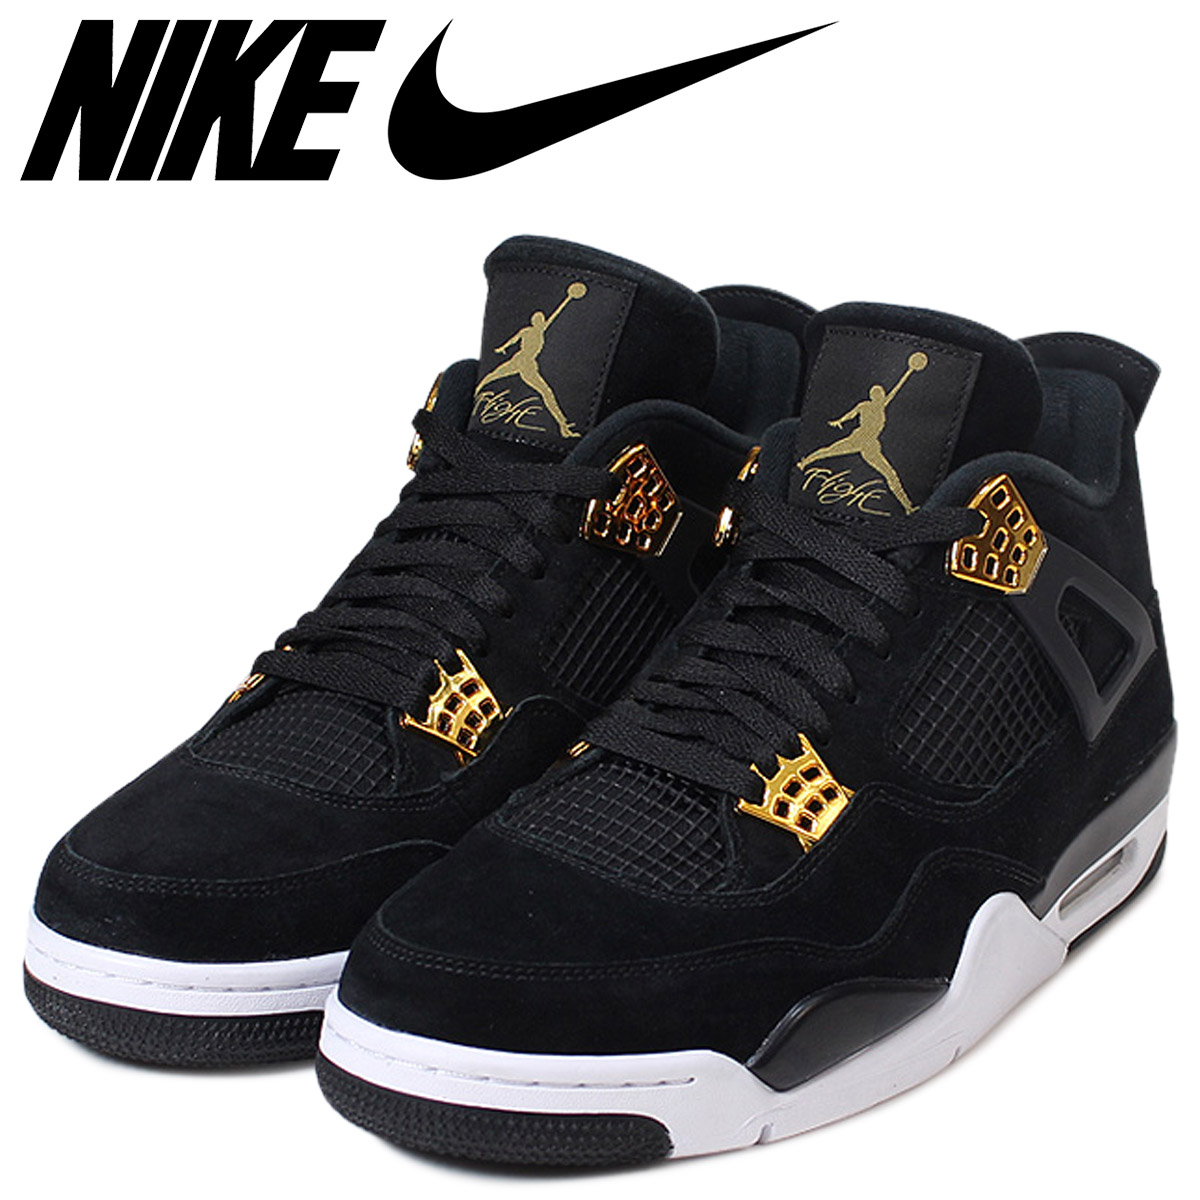 82a8b9062b641e discount nike nike air jordan 4 nostalgic royalty sneakers air jordan 4  retro royalty men 308497